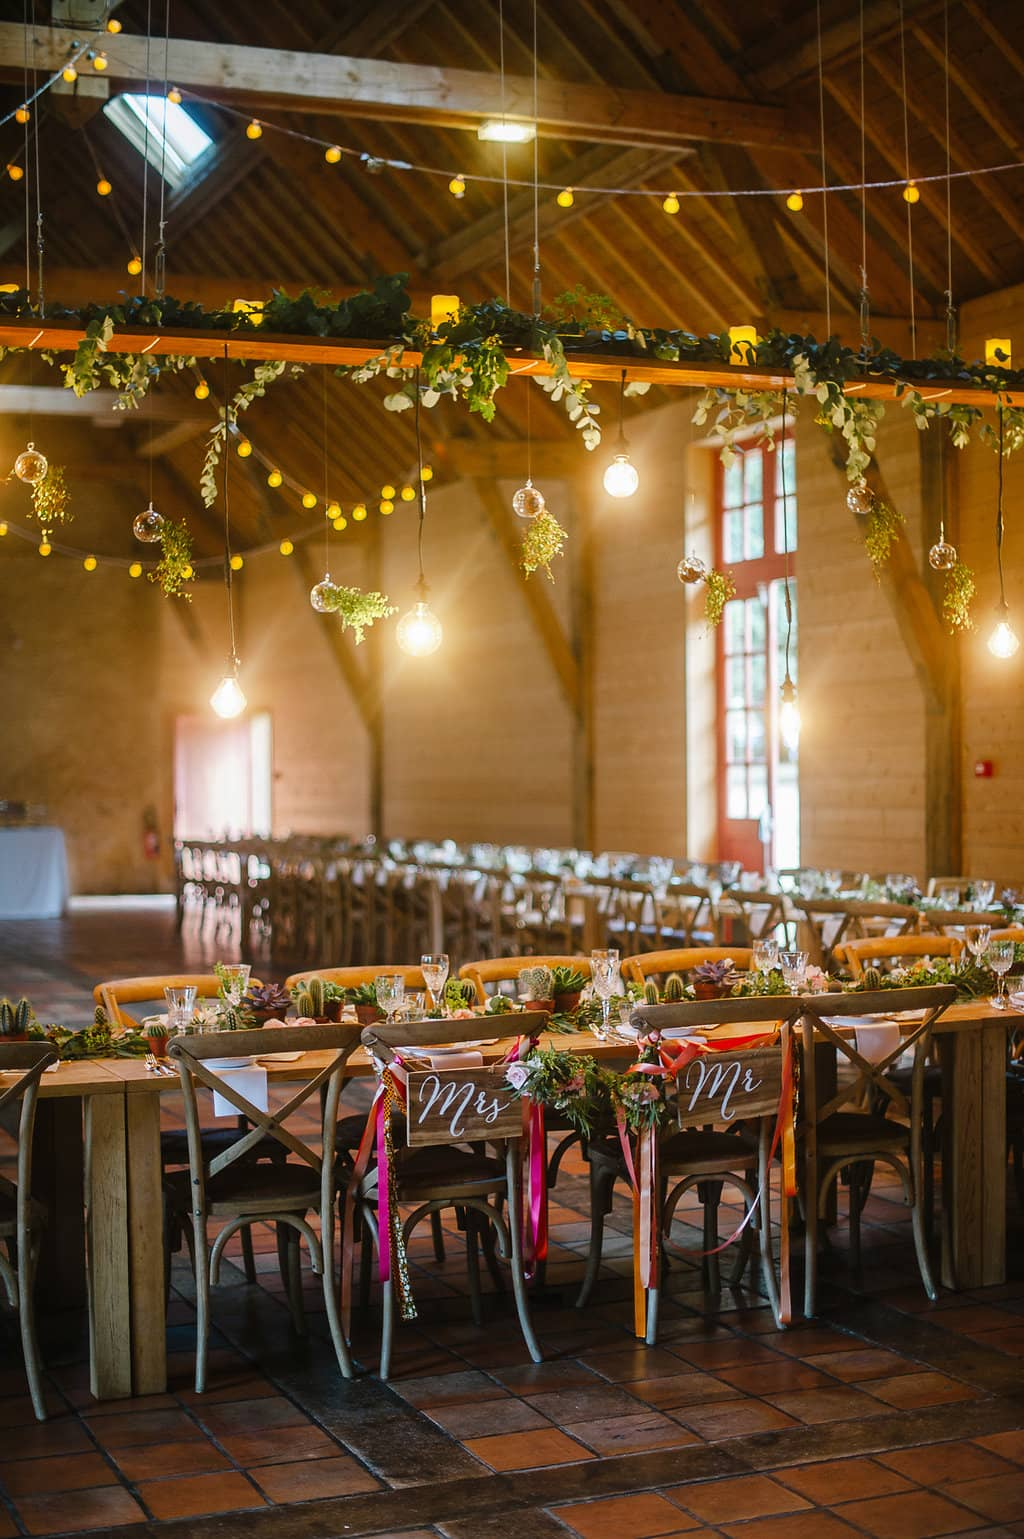 campagne-diner-centre-table-suspension-mariage